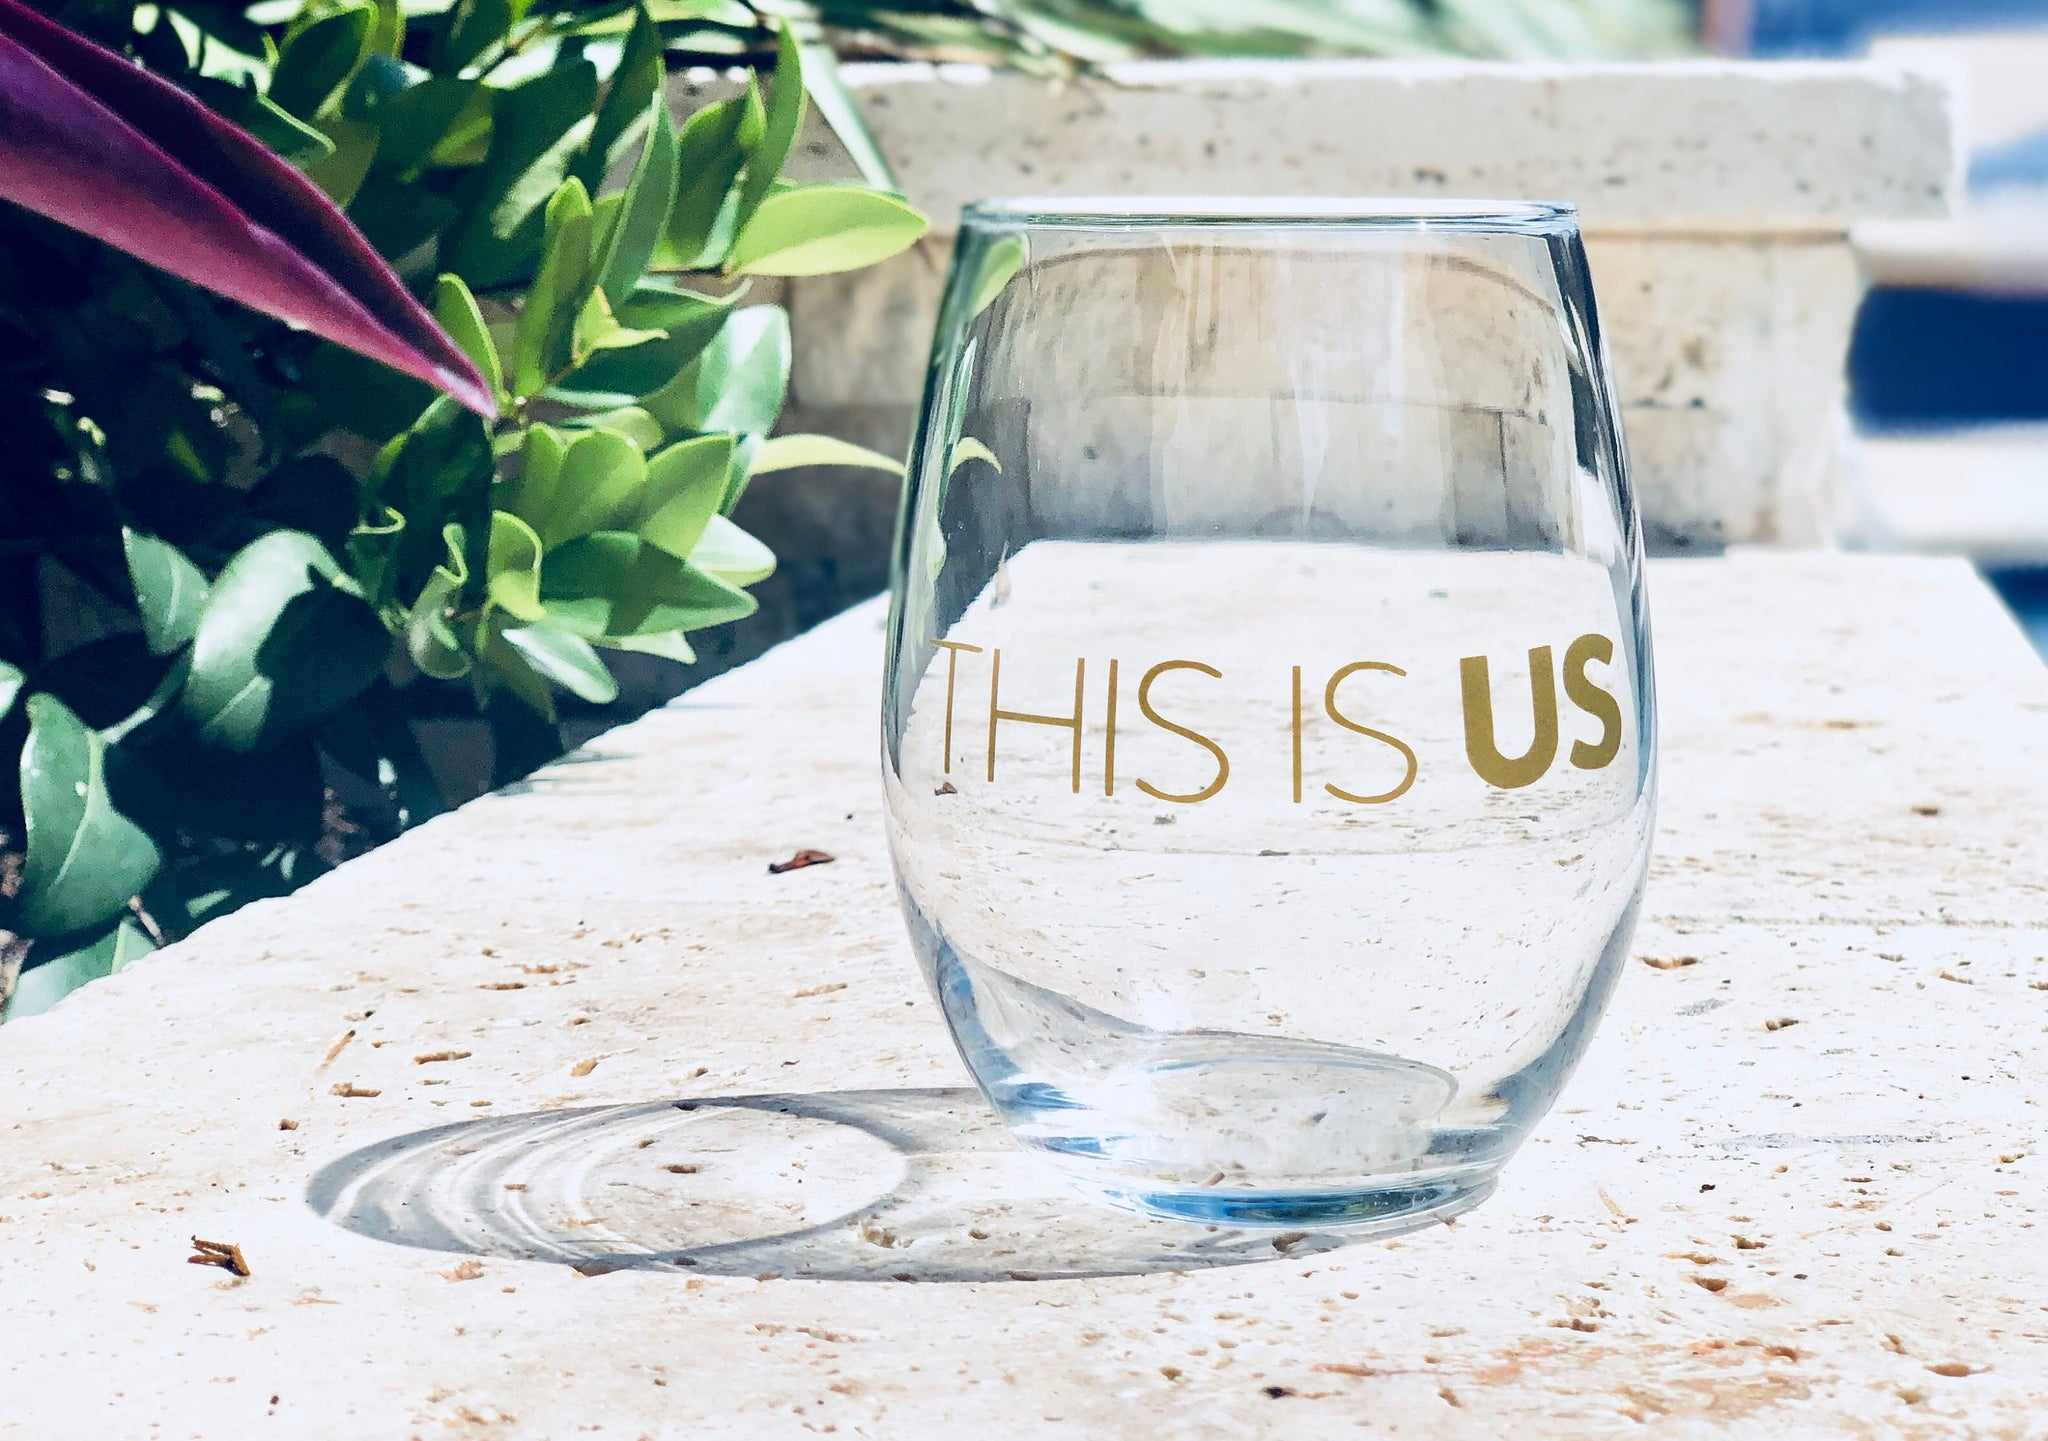 This is us glass, this is us, this is us wine glass, wine glass this is us, this is us gift, favorite show wine glass, this is us tv show